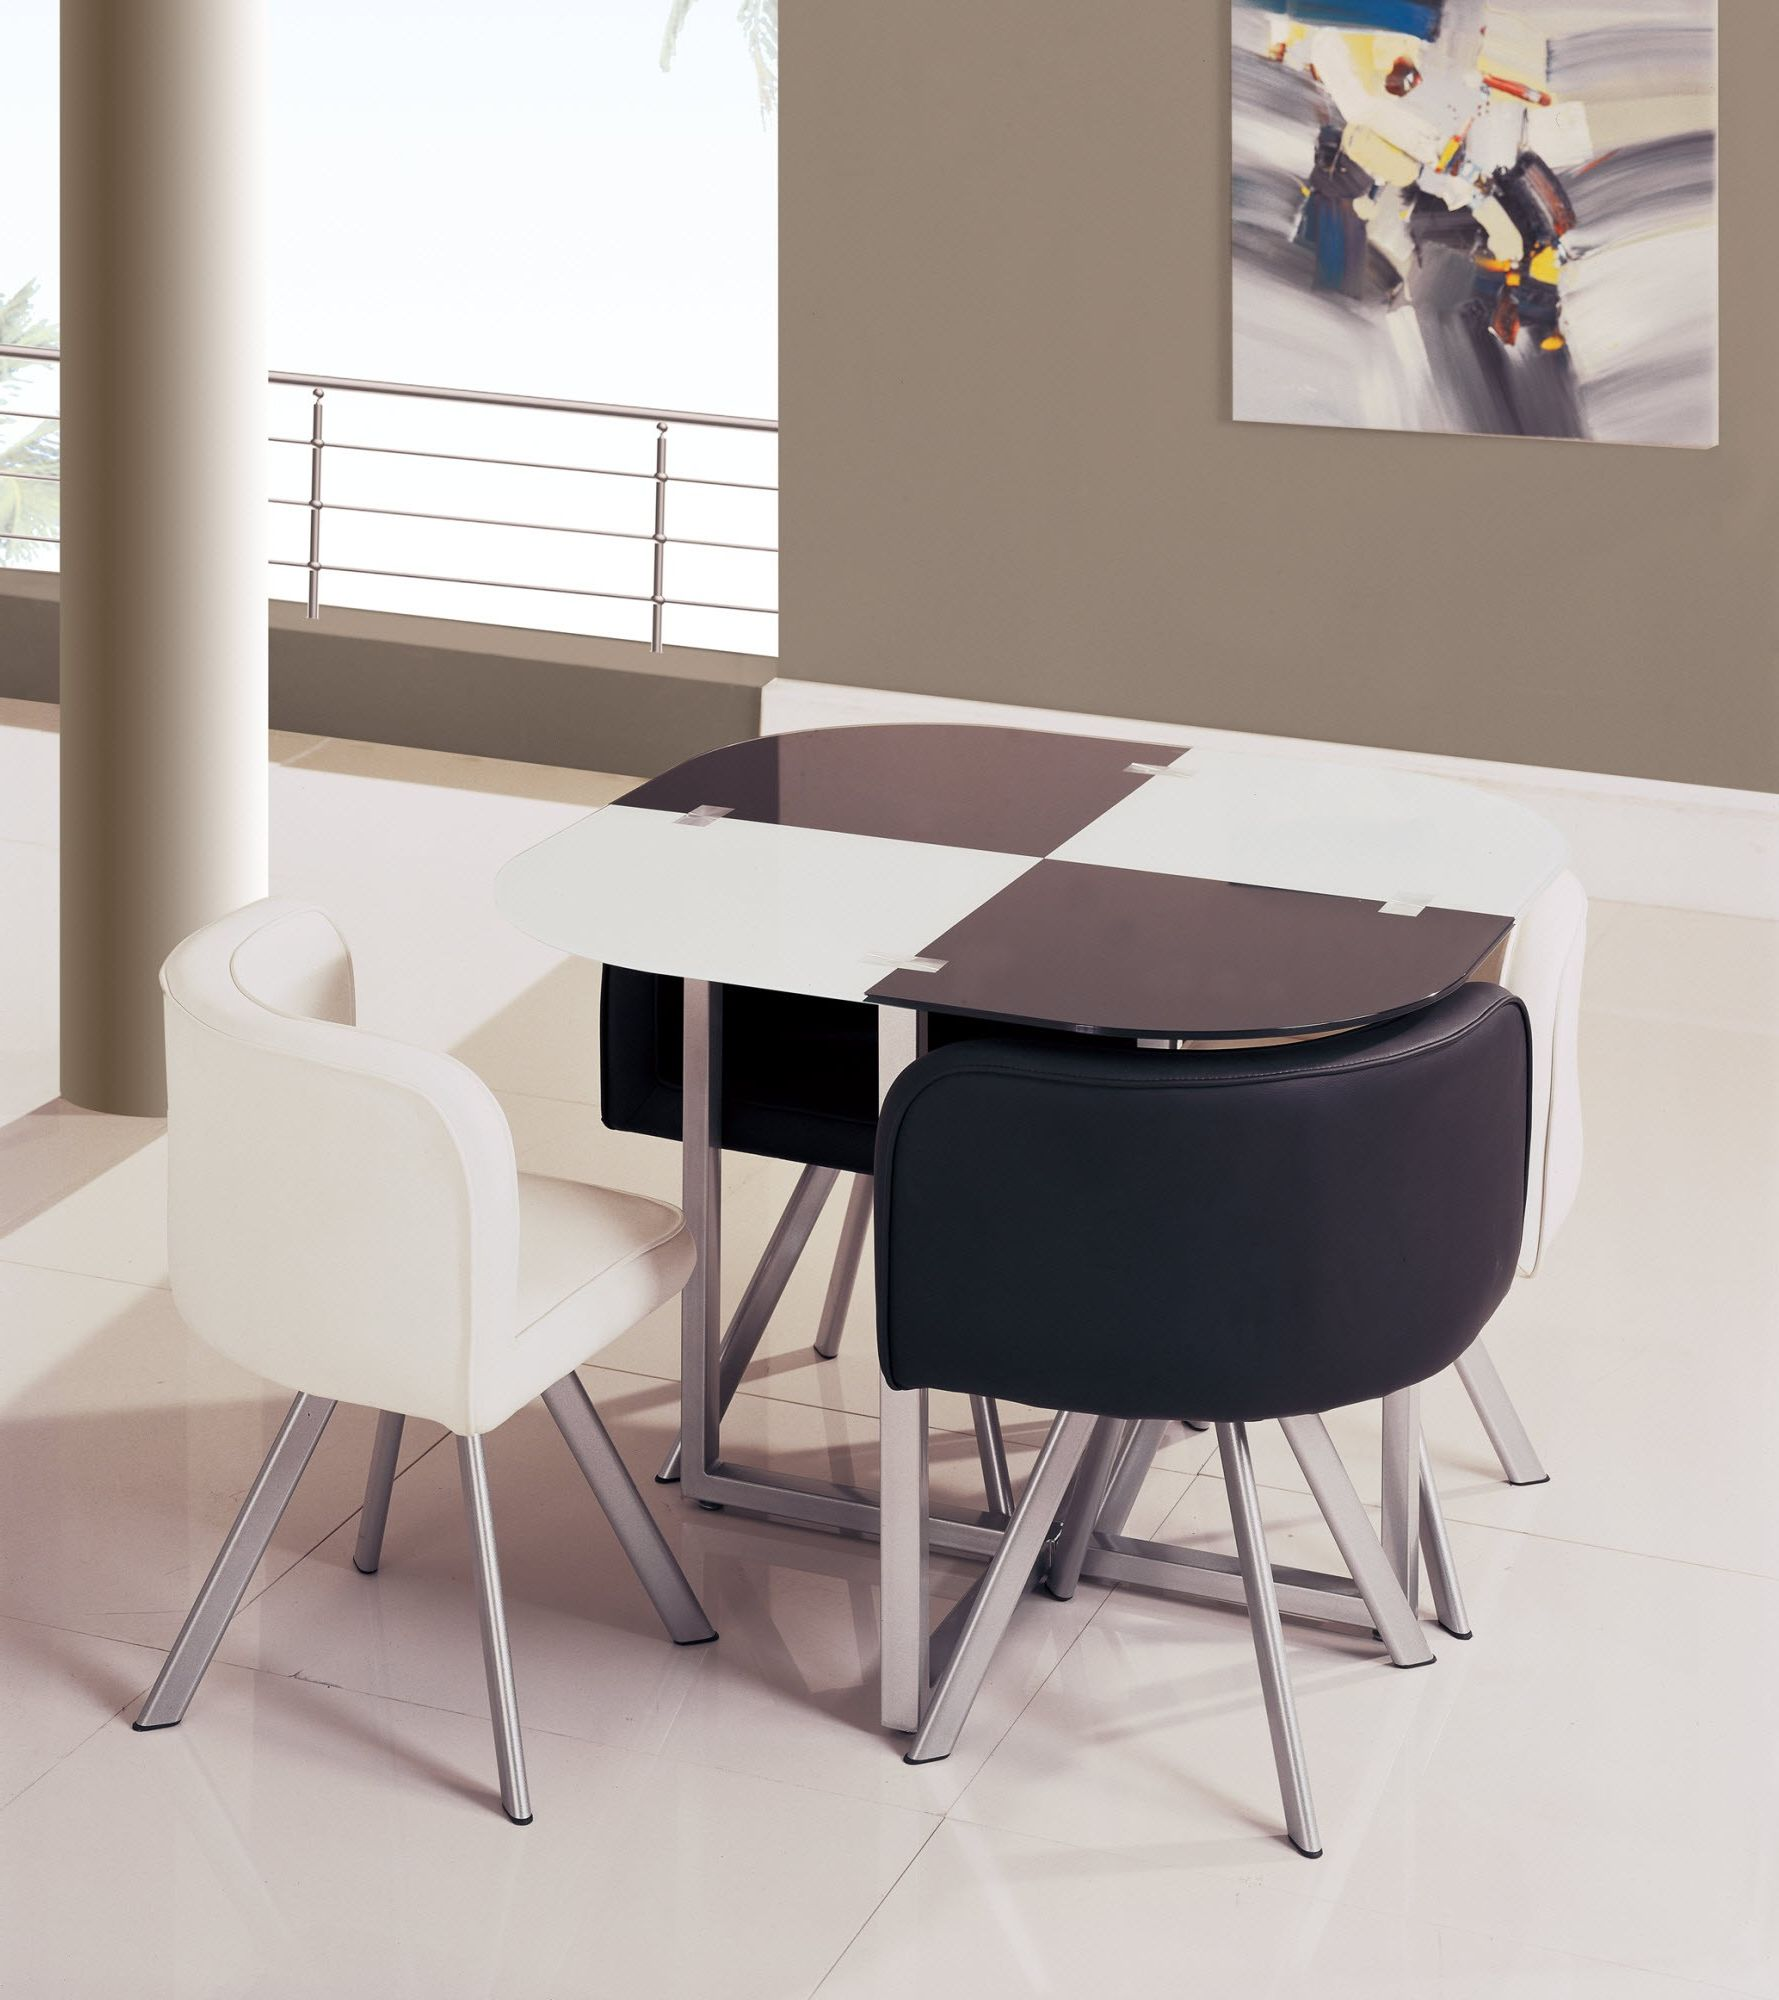 Space Saver Dining Room Table: Good Space Saver Dining Set